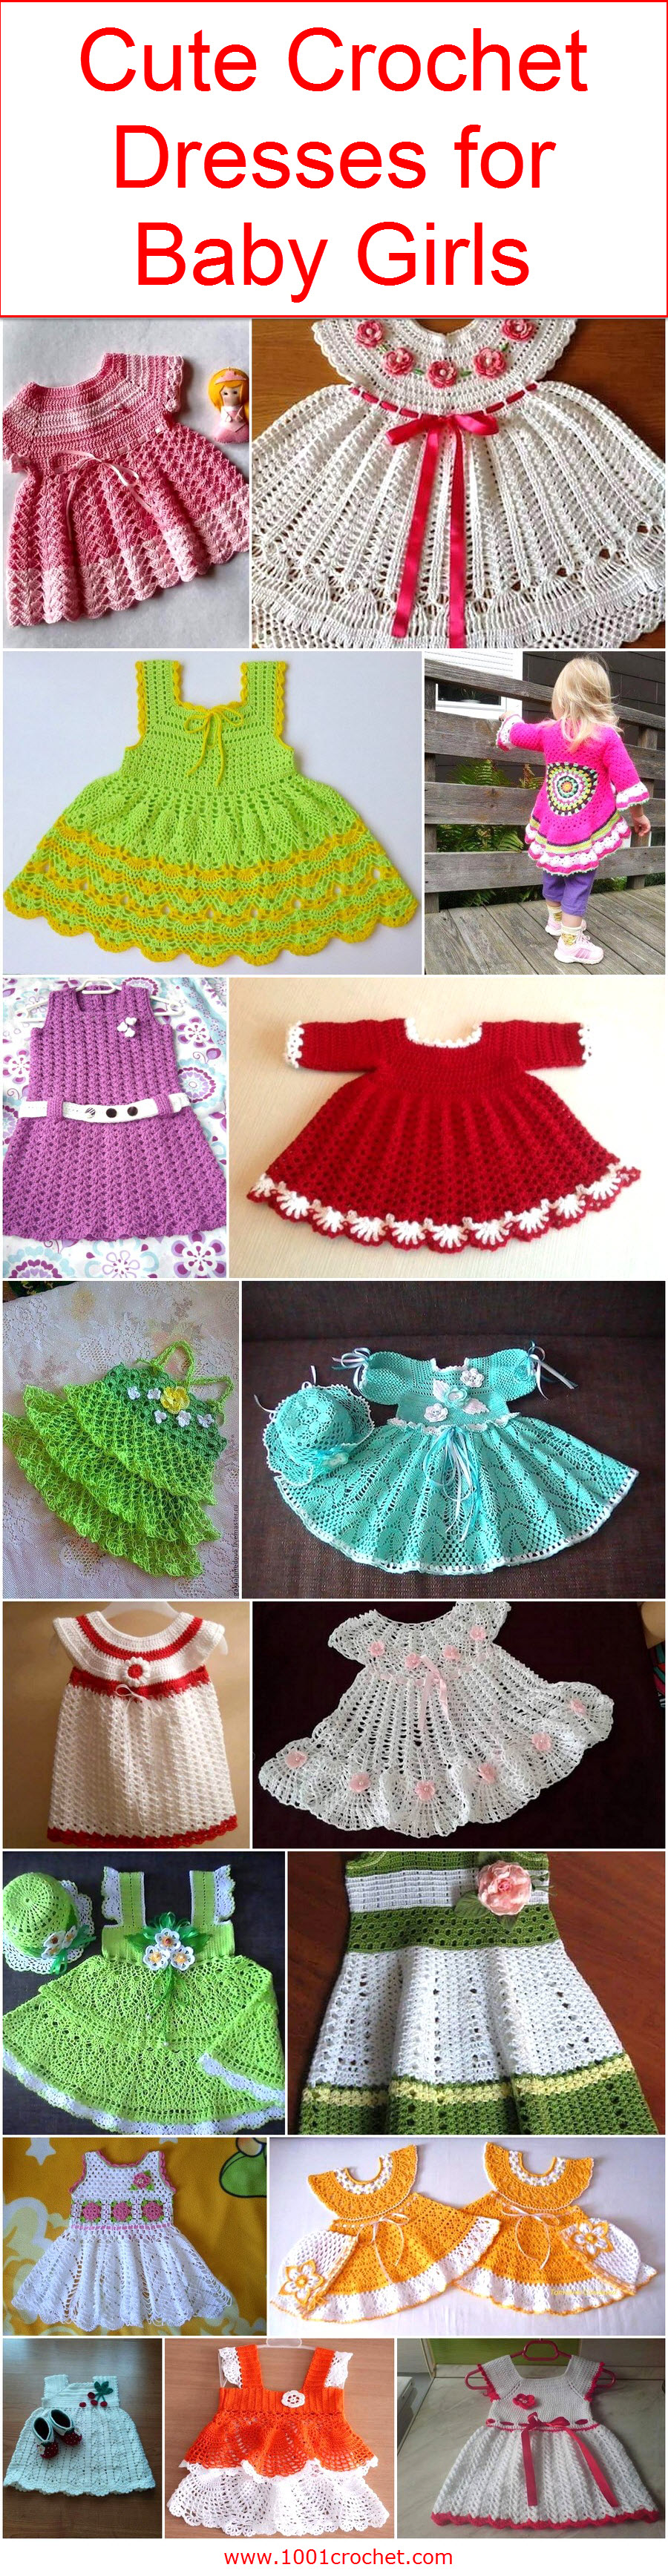 cute-crochet-dresses-for-baby-girls